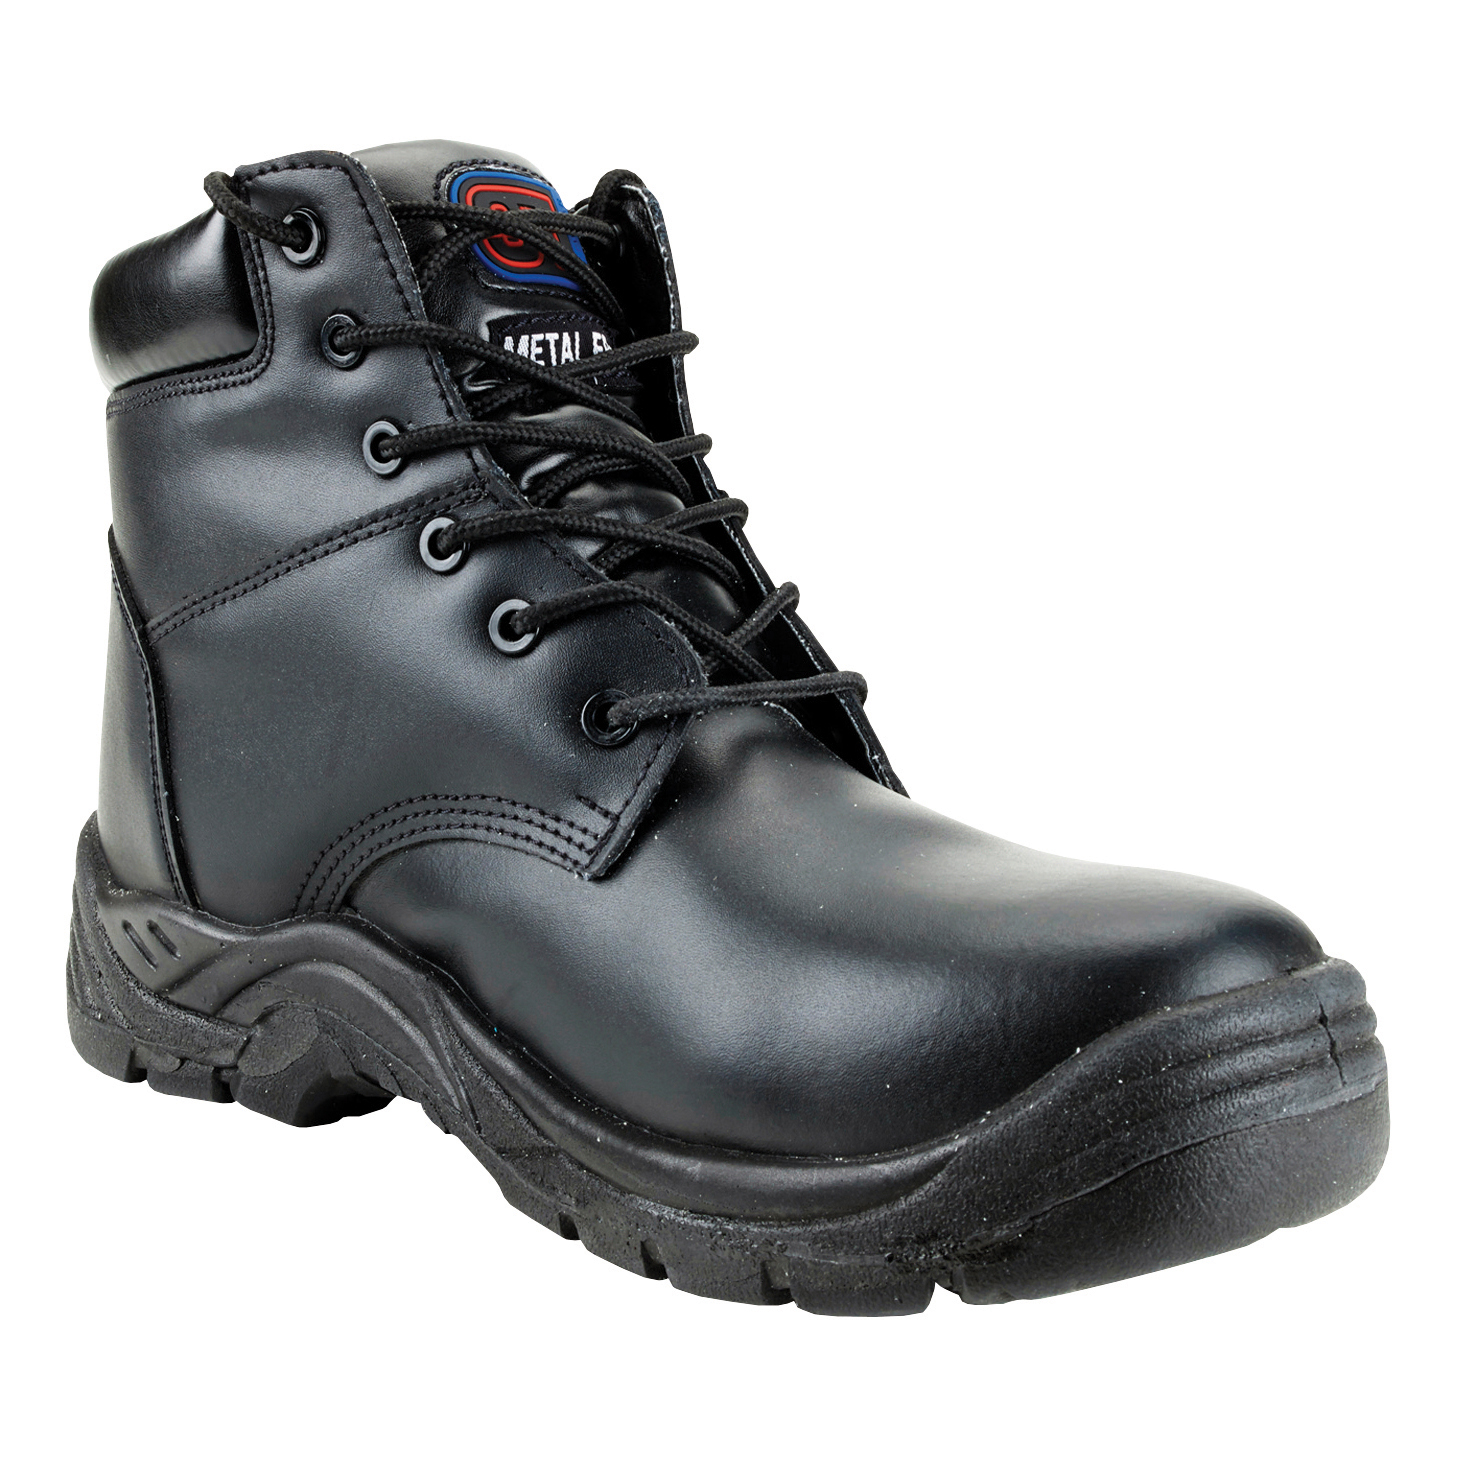 ST Toelite Boot Leather Comp' Midsole Safety Toecap Metal Free sze 13 Blk Ref 90178 *Approx 3 Day L/Time*